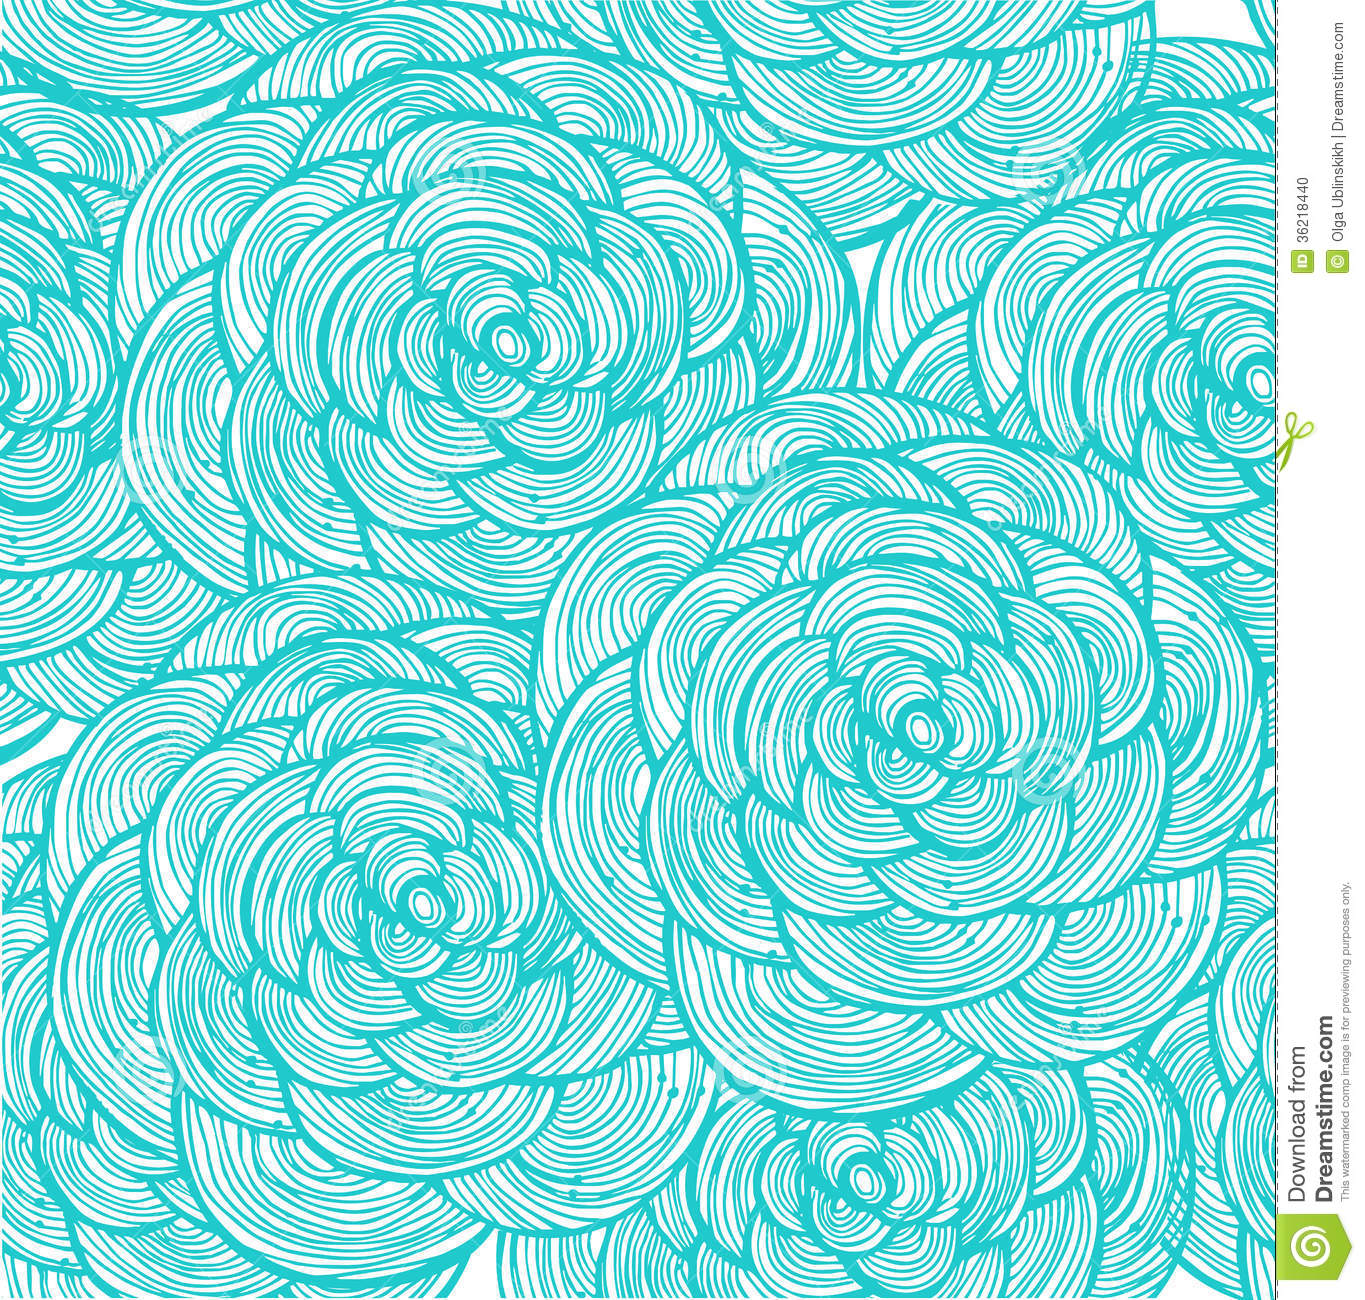 Turquoise Linear Flowers Background Stock Photo - Image: 36218440